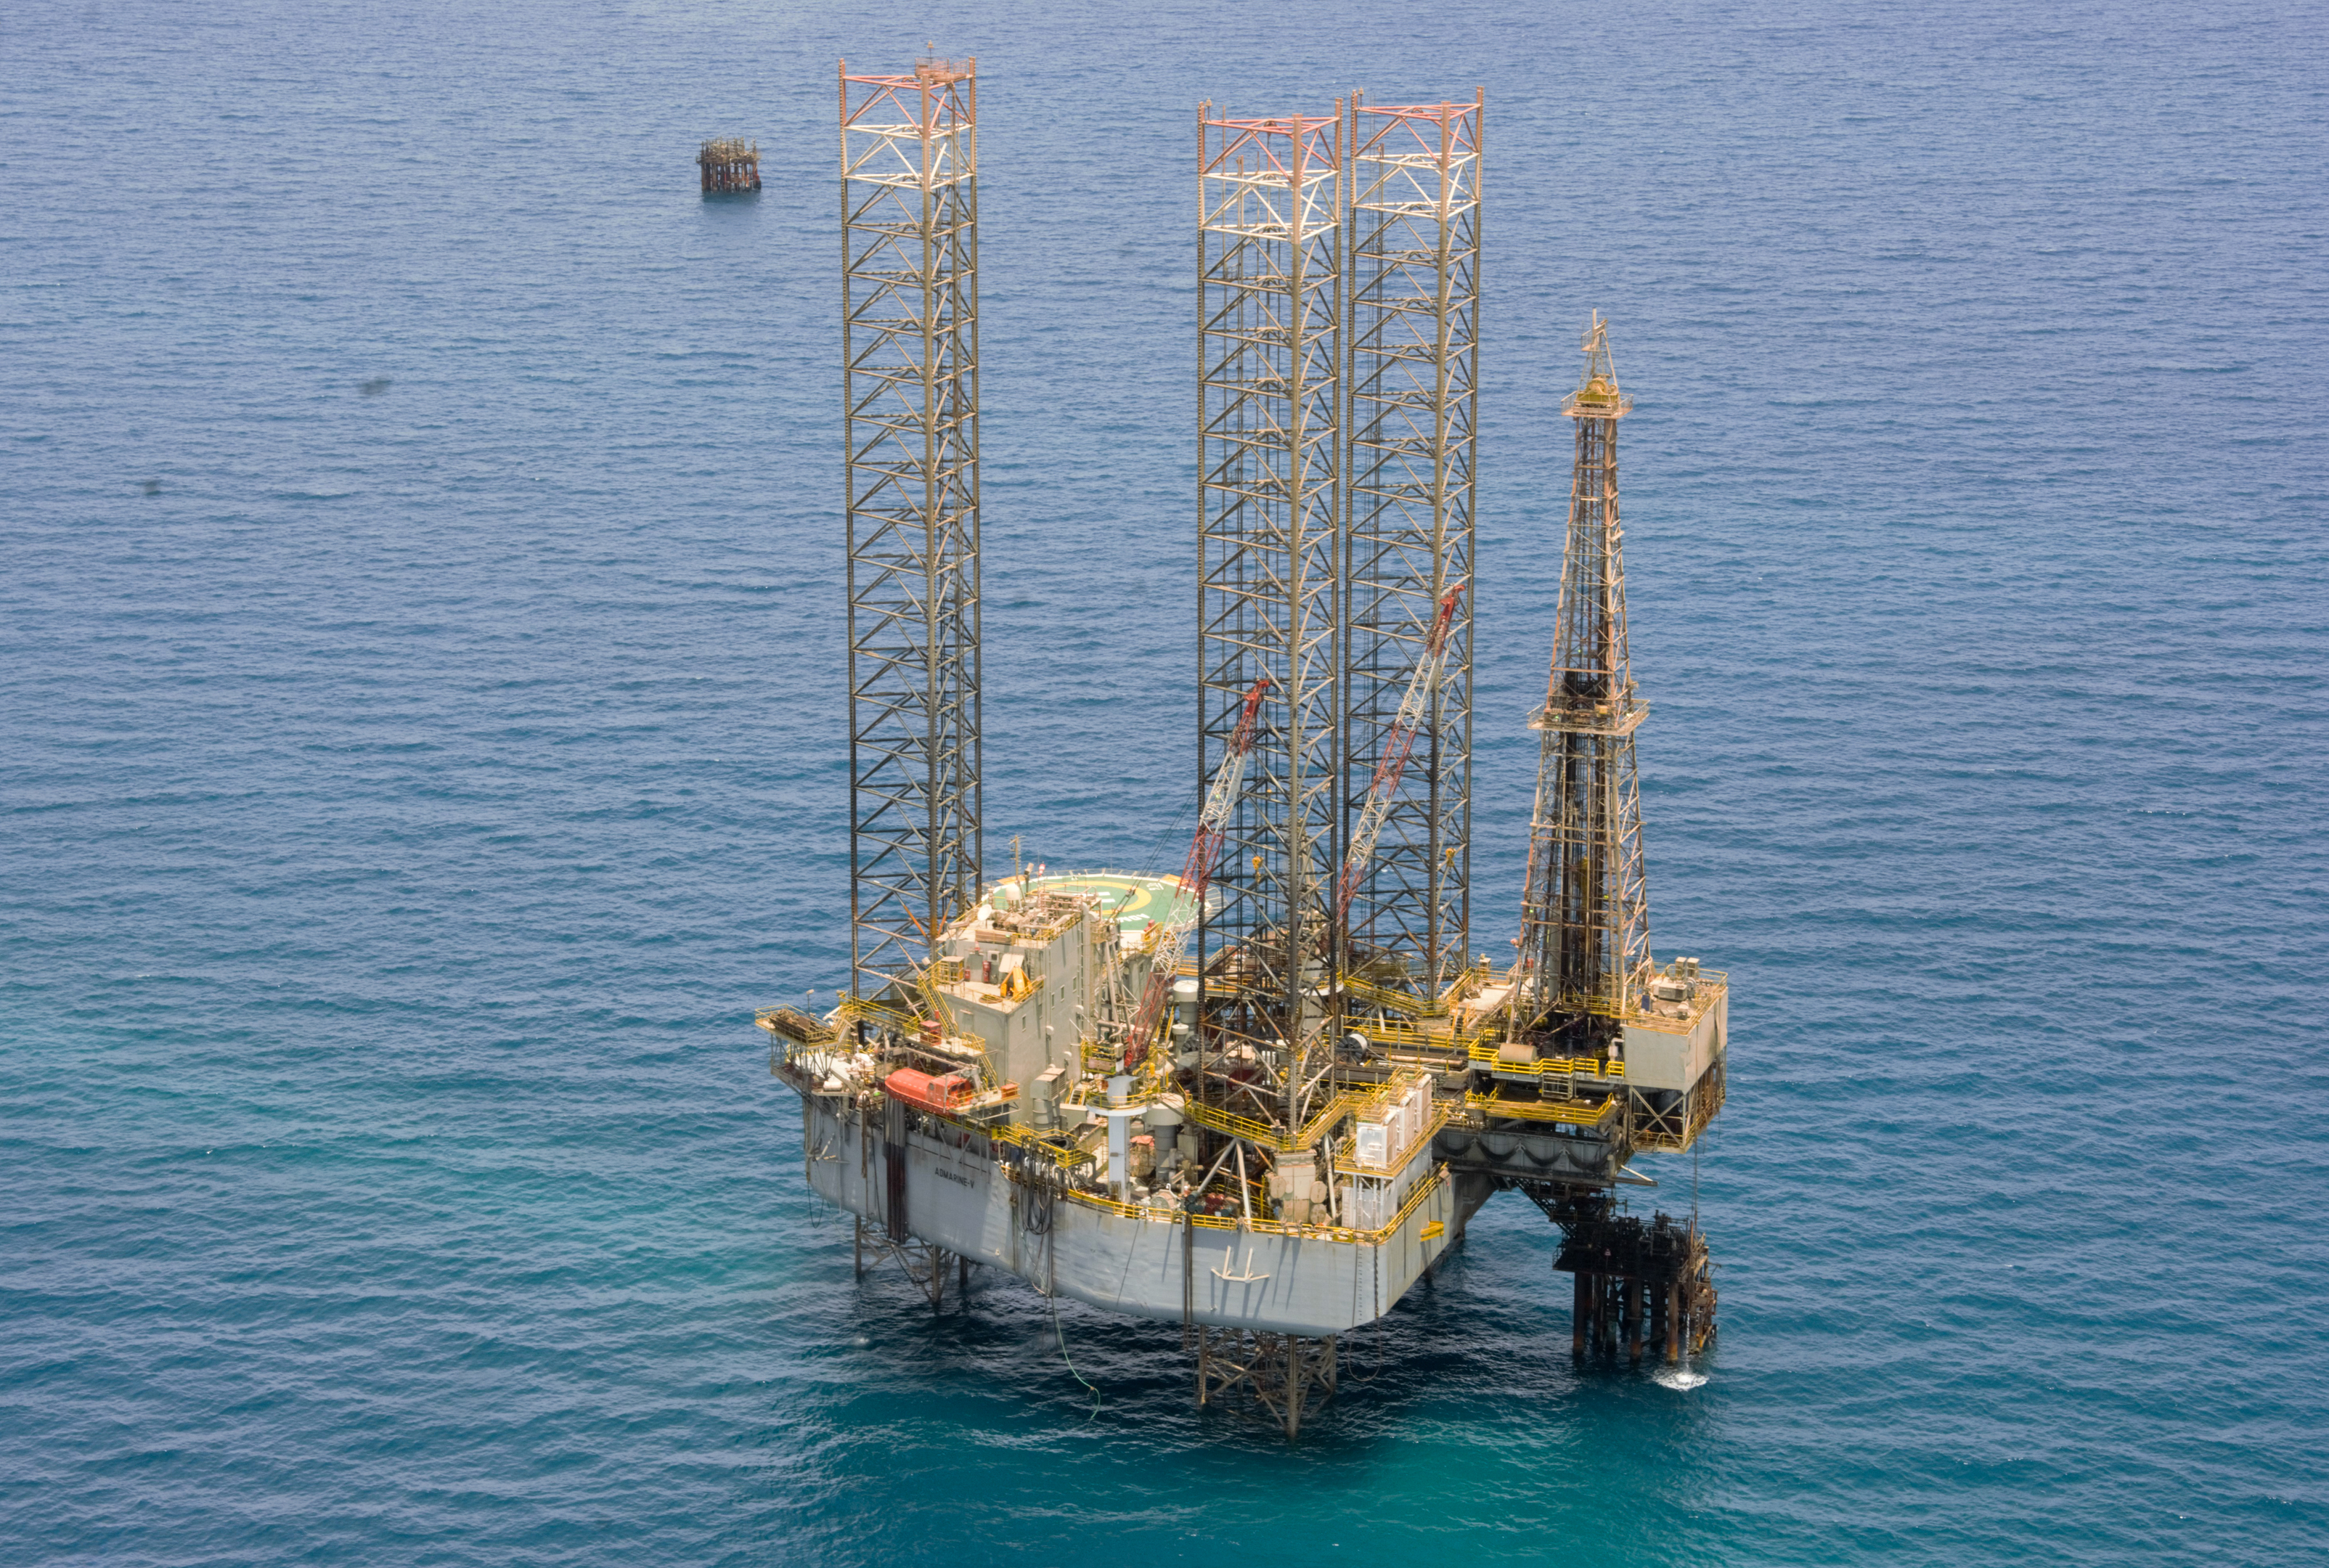 The Admarine V rig, which was contracted to Belayim Petroleum Co. (Petrobel), a joint venture between ENI IEOC and Egyptian General Petroleum Corporation (EGPC) in July.